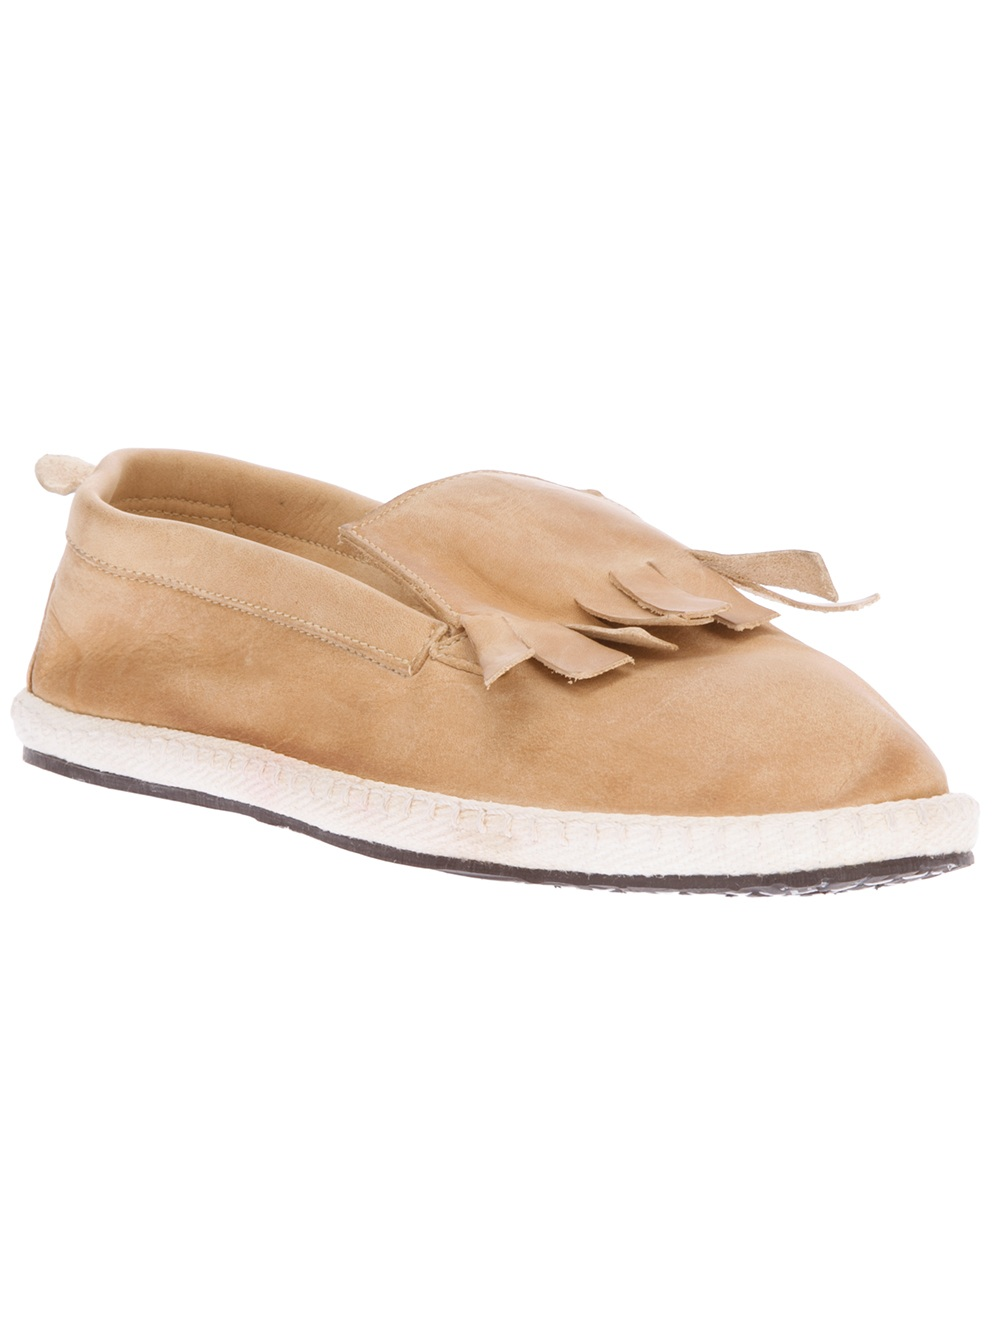 Lyst Allagiulia Tasseled Nubuck Leather Loafers In Natural